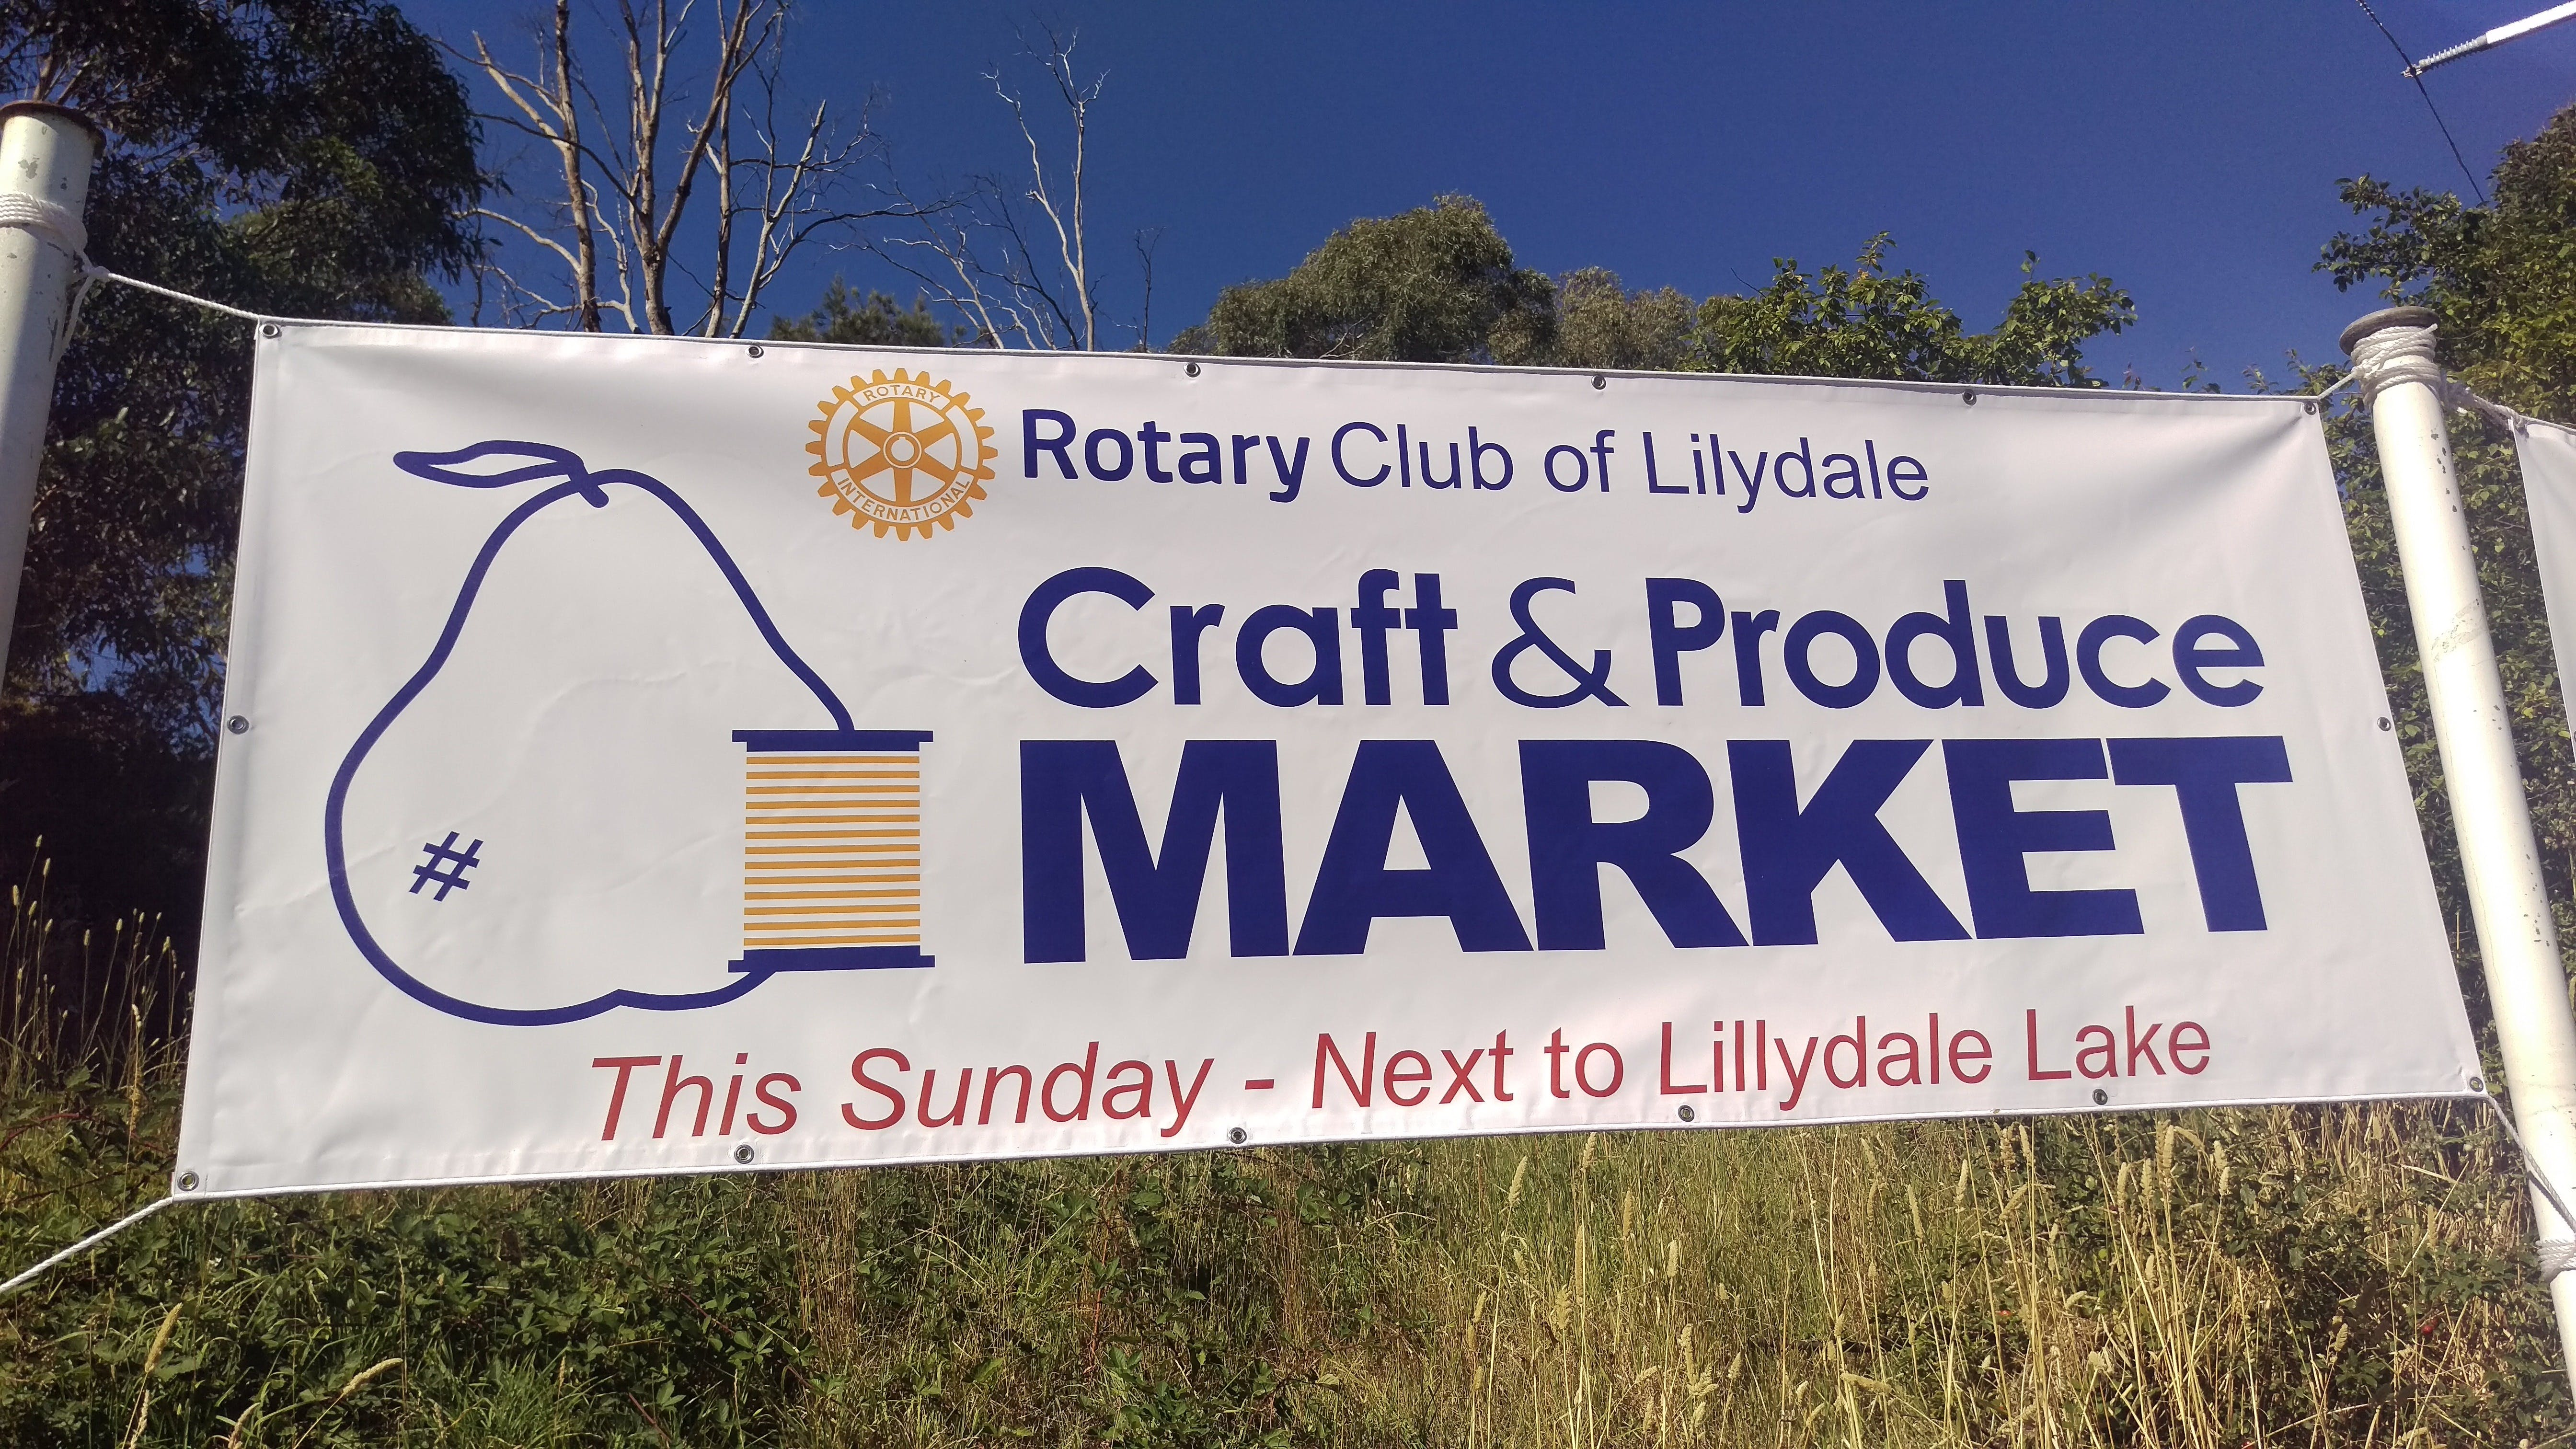 Rotary Club of Lilydale Craft and Produce Market - eAccommodation